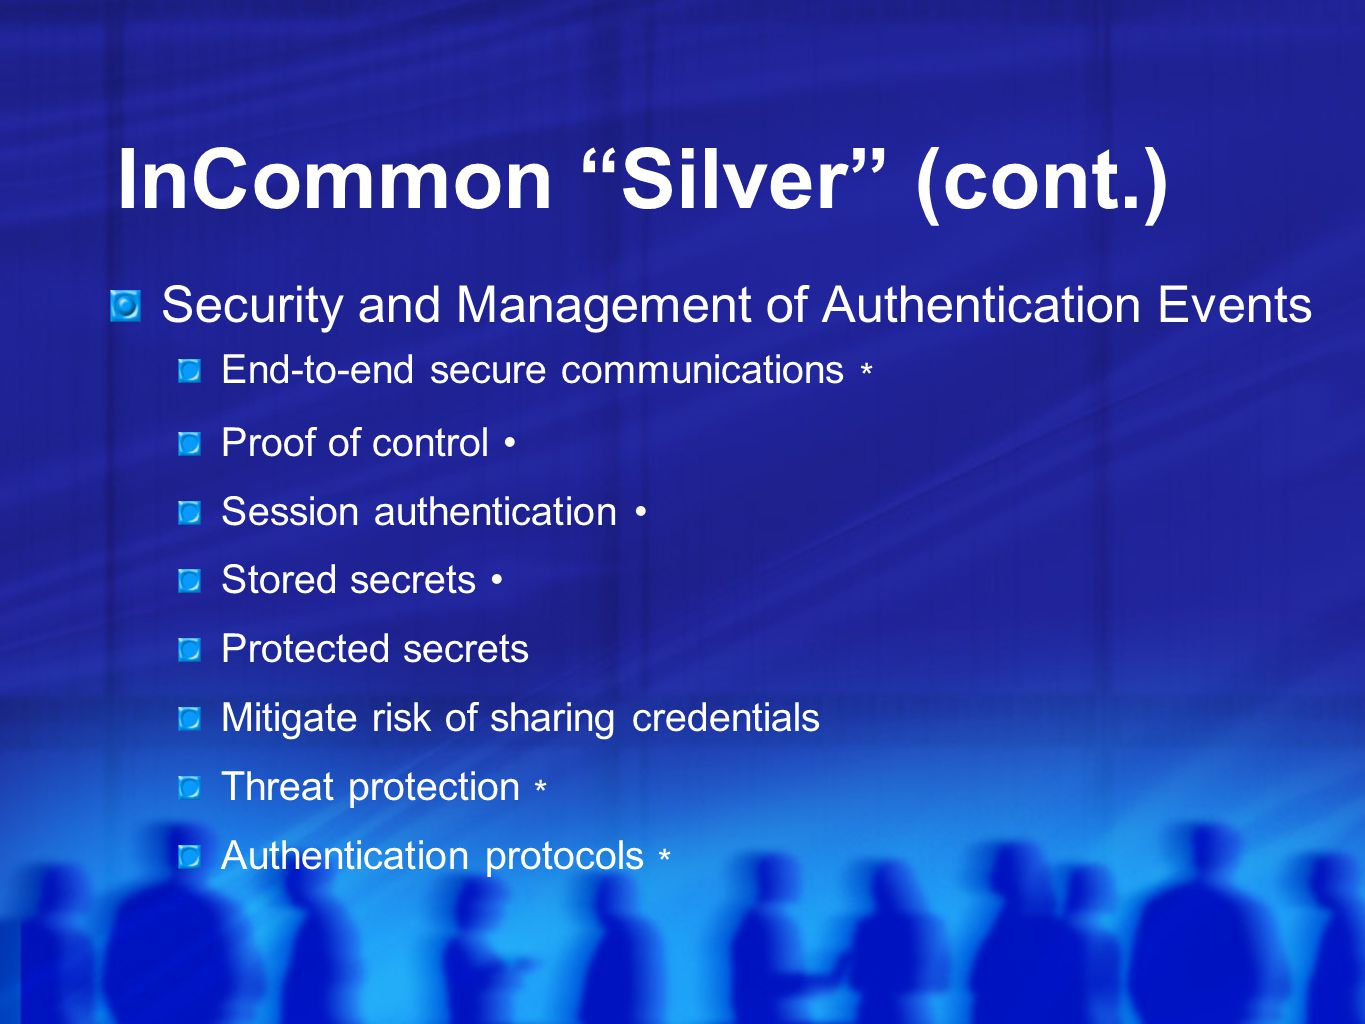 InCommon Silver (cont.) Security and Management of Authentication Events End-to-end secure communications * Proof of control Session authentication Stored secrets Protected secrets Mitigate risk of sharing credentials Threat protection * Authentication protocols *